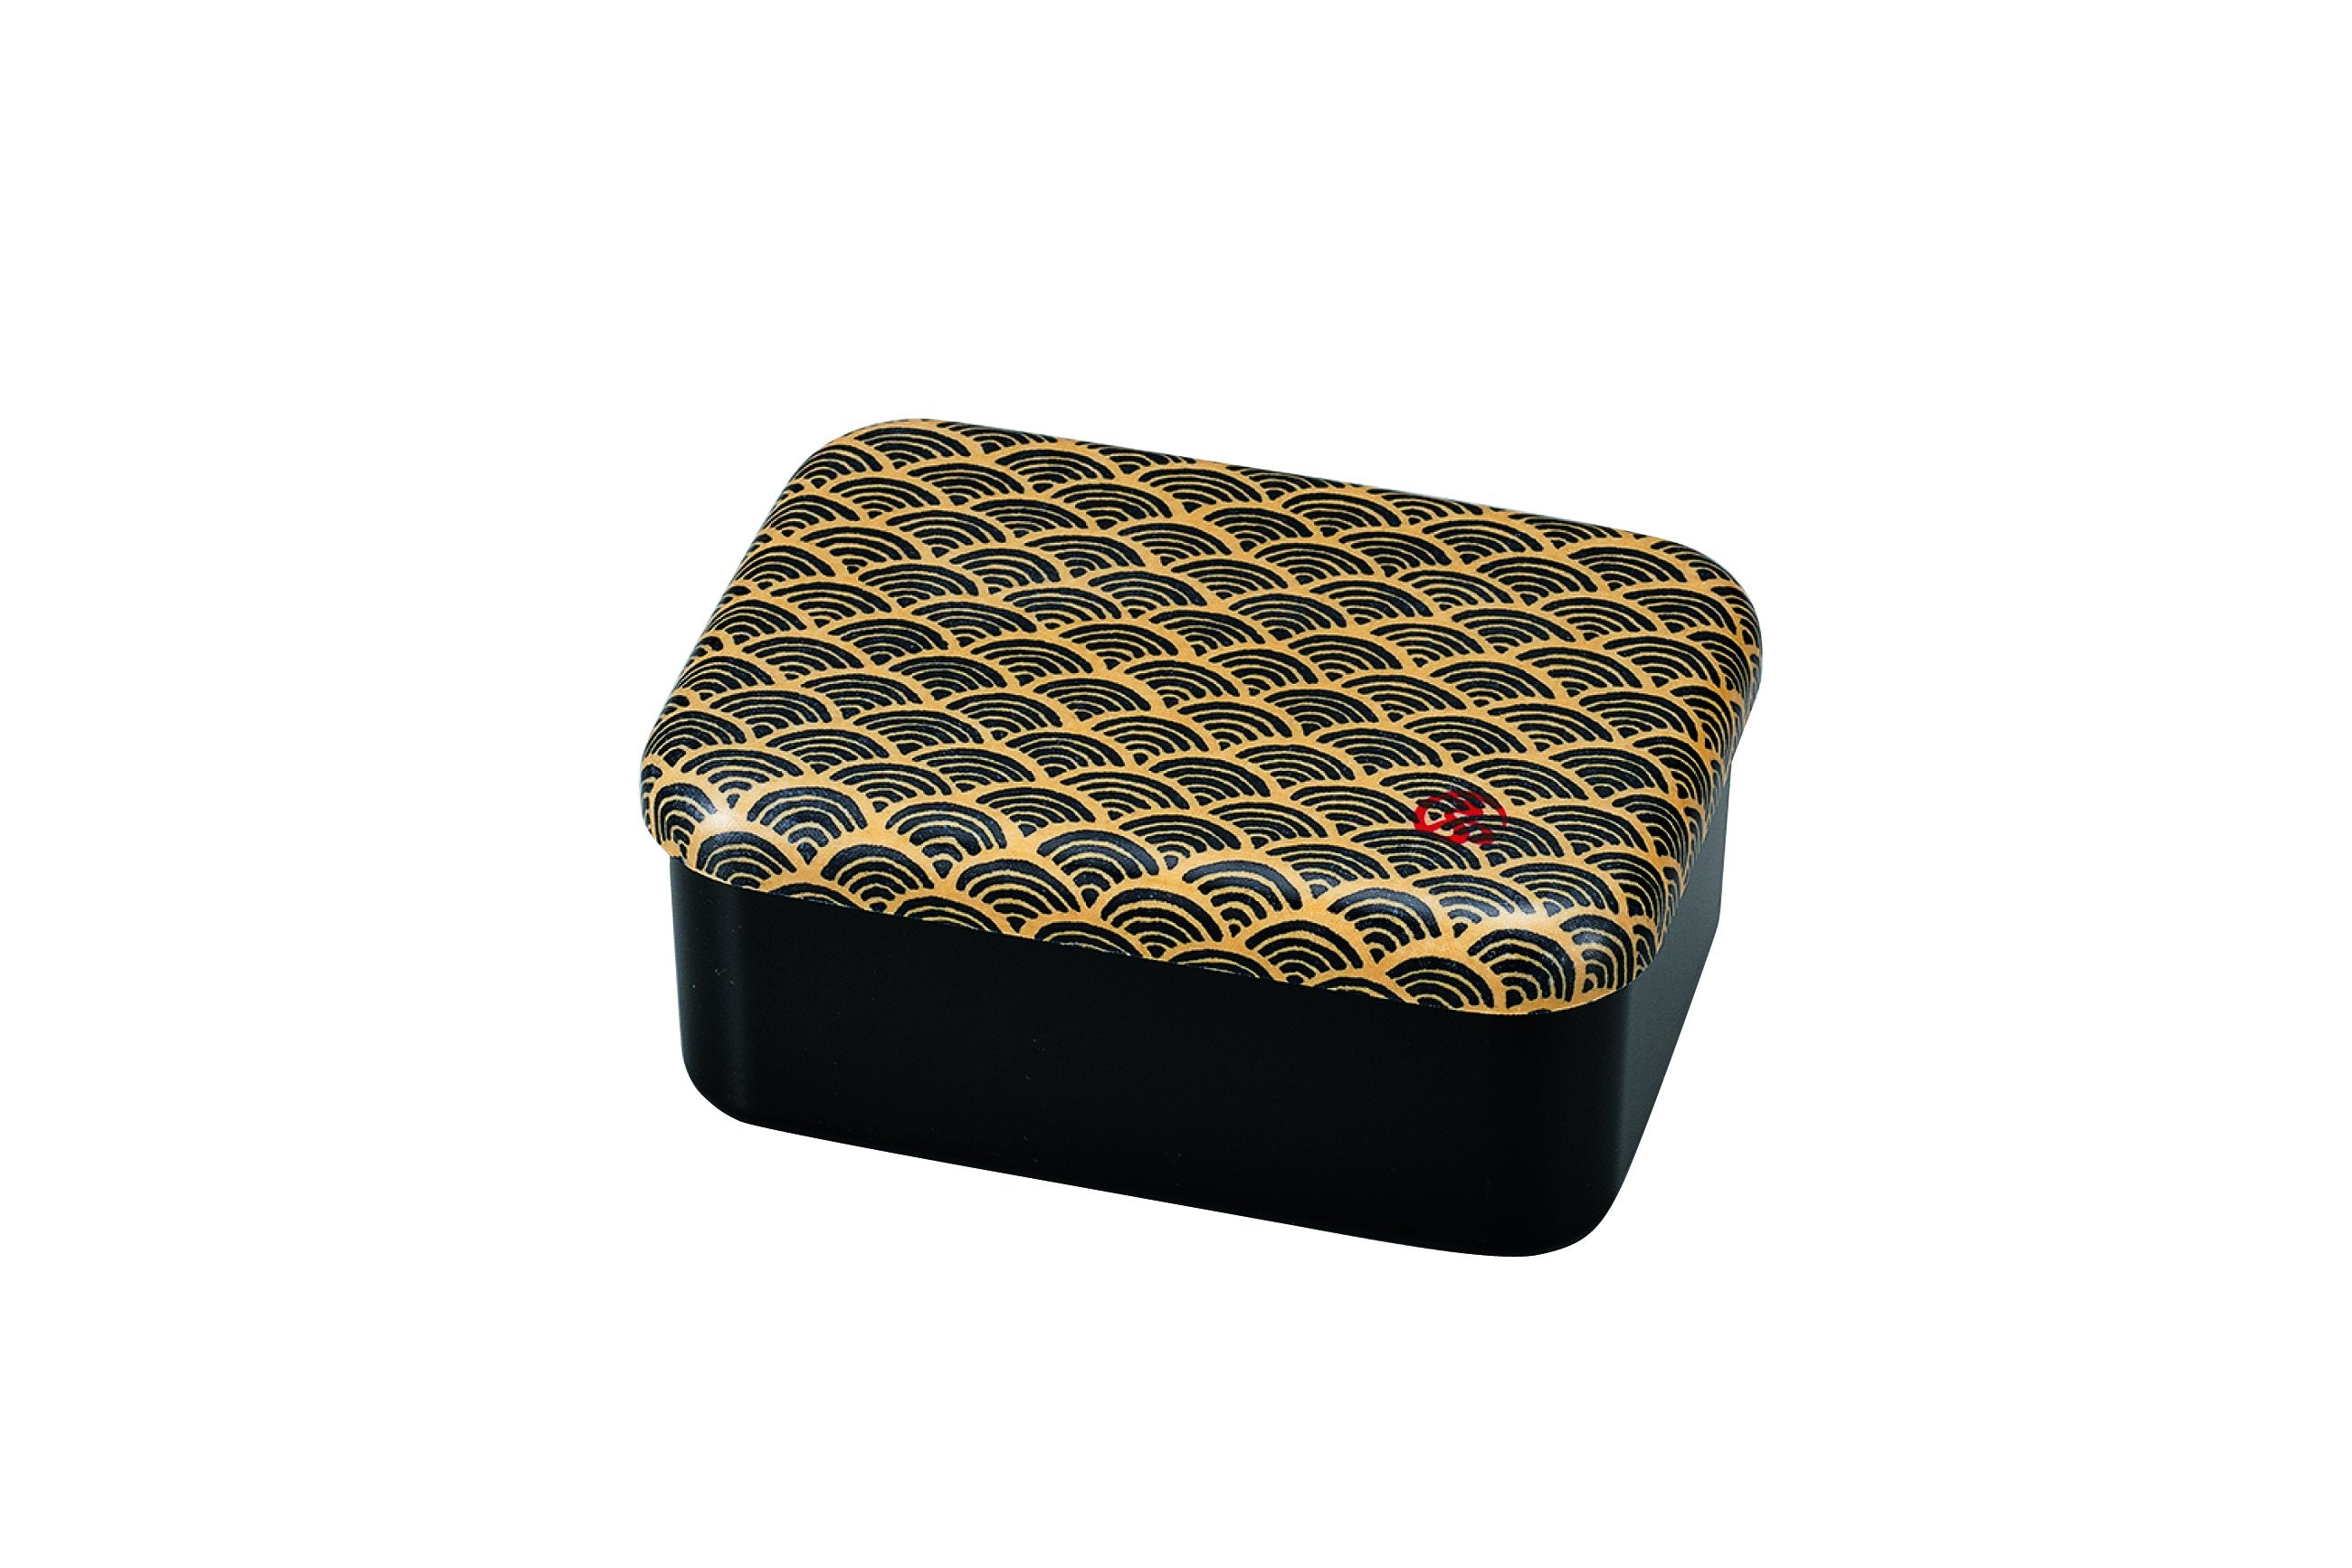 Wafu Cloth One Tier Rectangle Bento Box | Ocean Wave by Hakoya - Bento&co Japanese Bento Lunch Boxes and Kitchenware Specialists